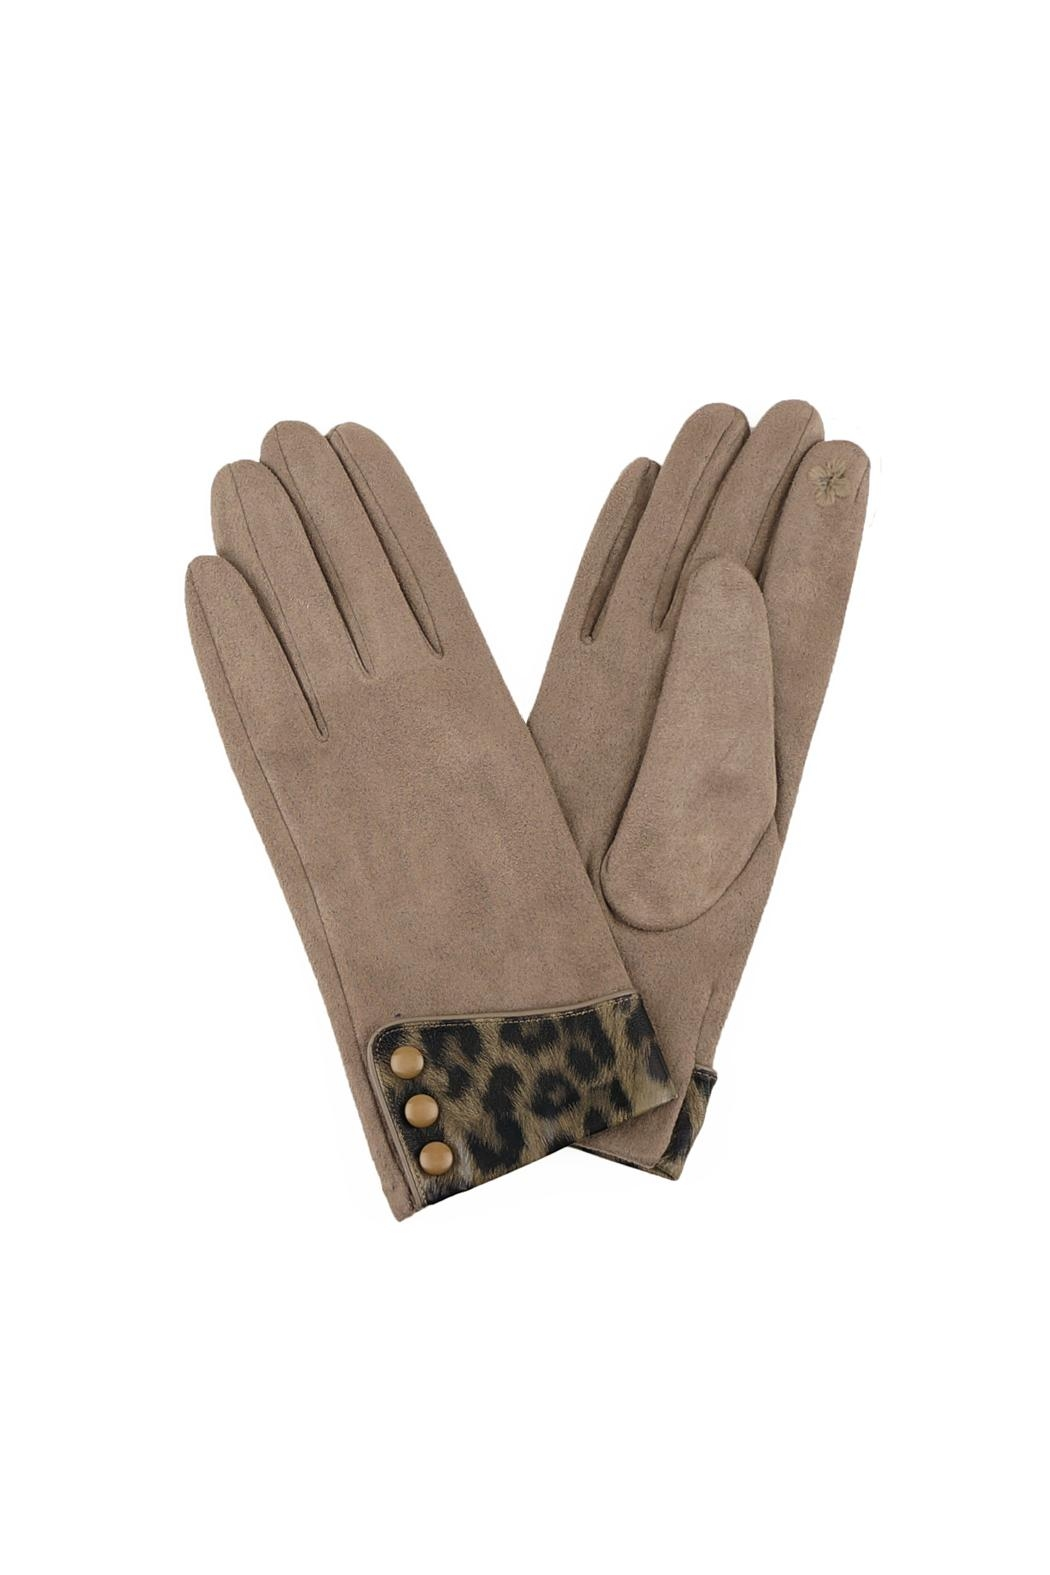 Riah Fashion Leopard-Print-Cuff-Gloves-Smart-Touch - Front Cropped Image